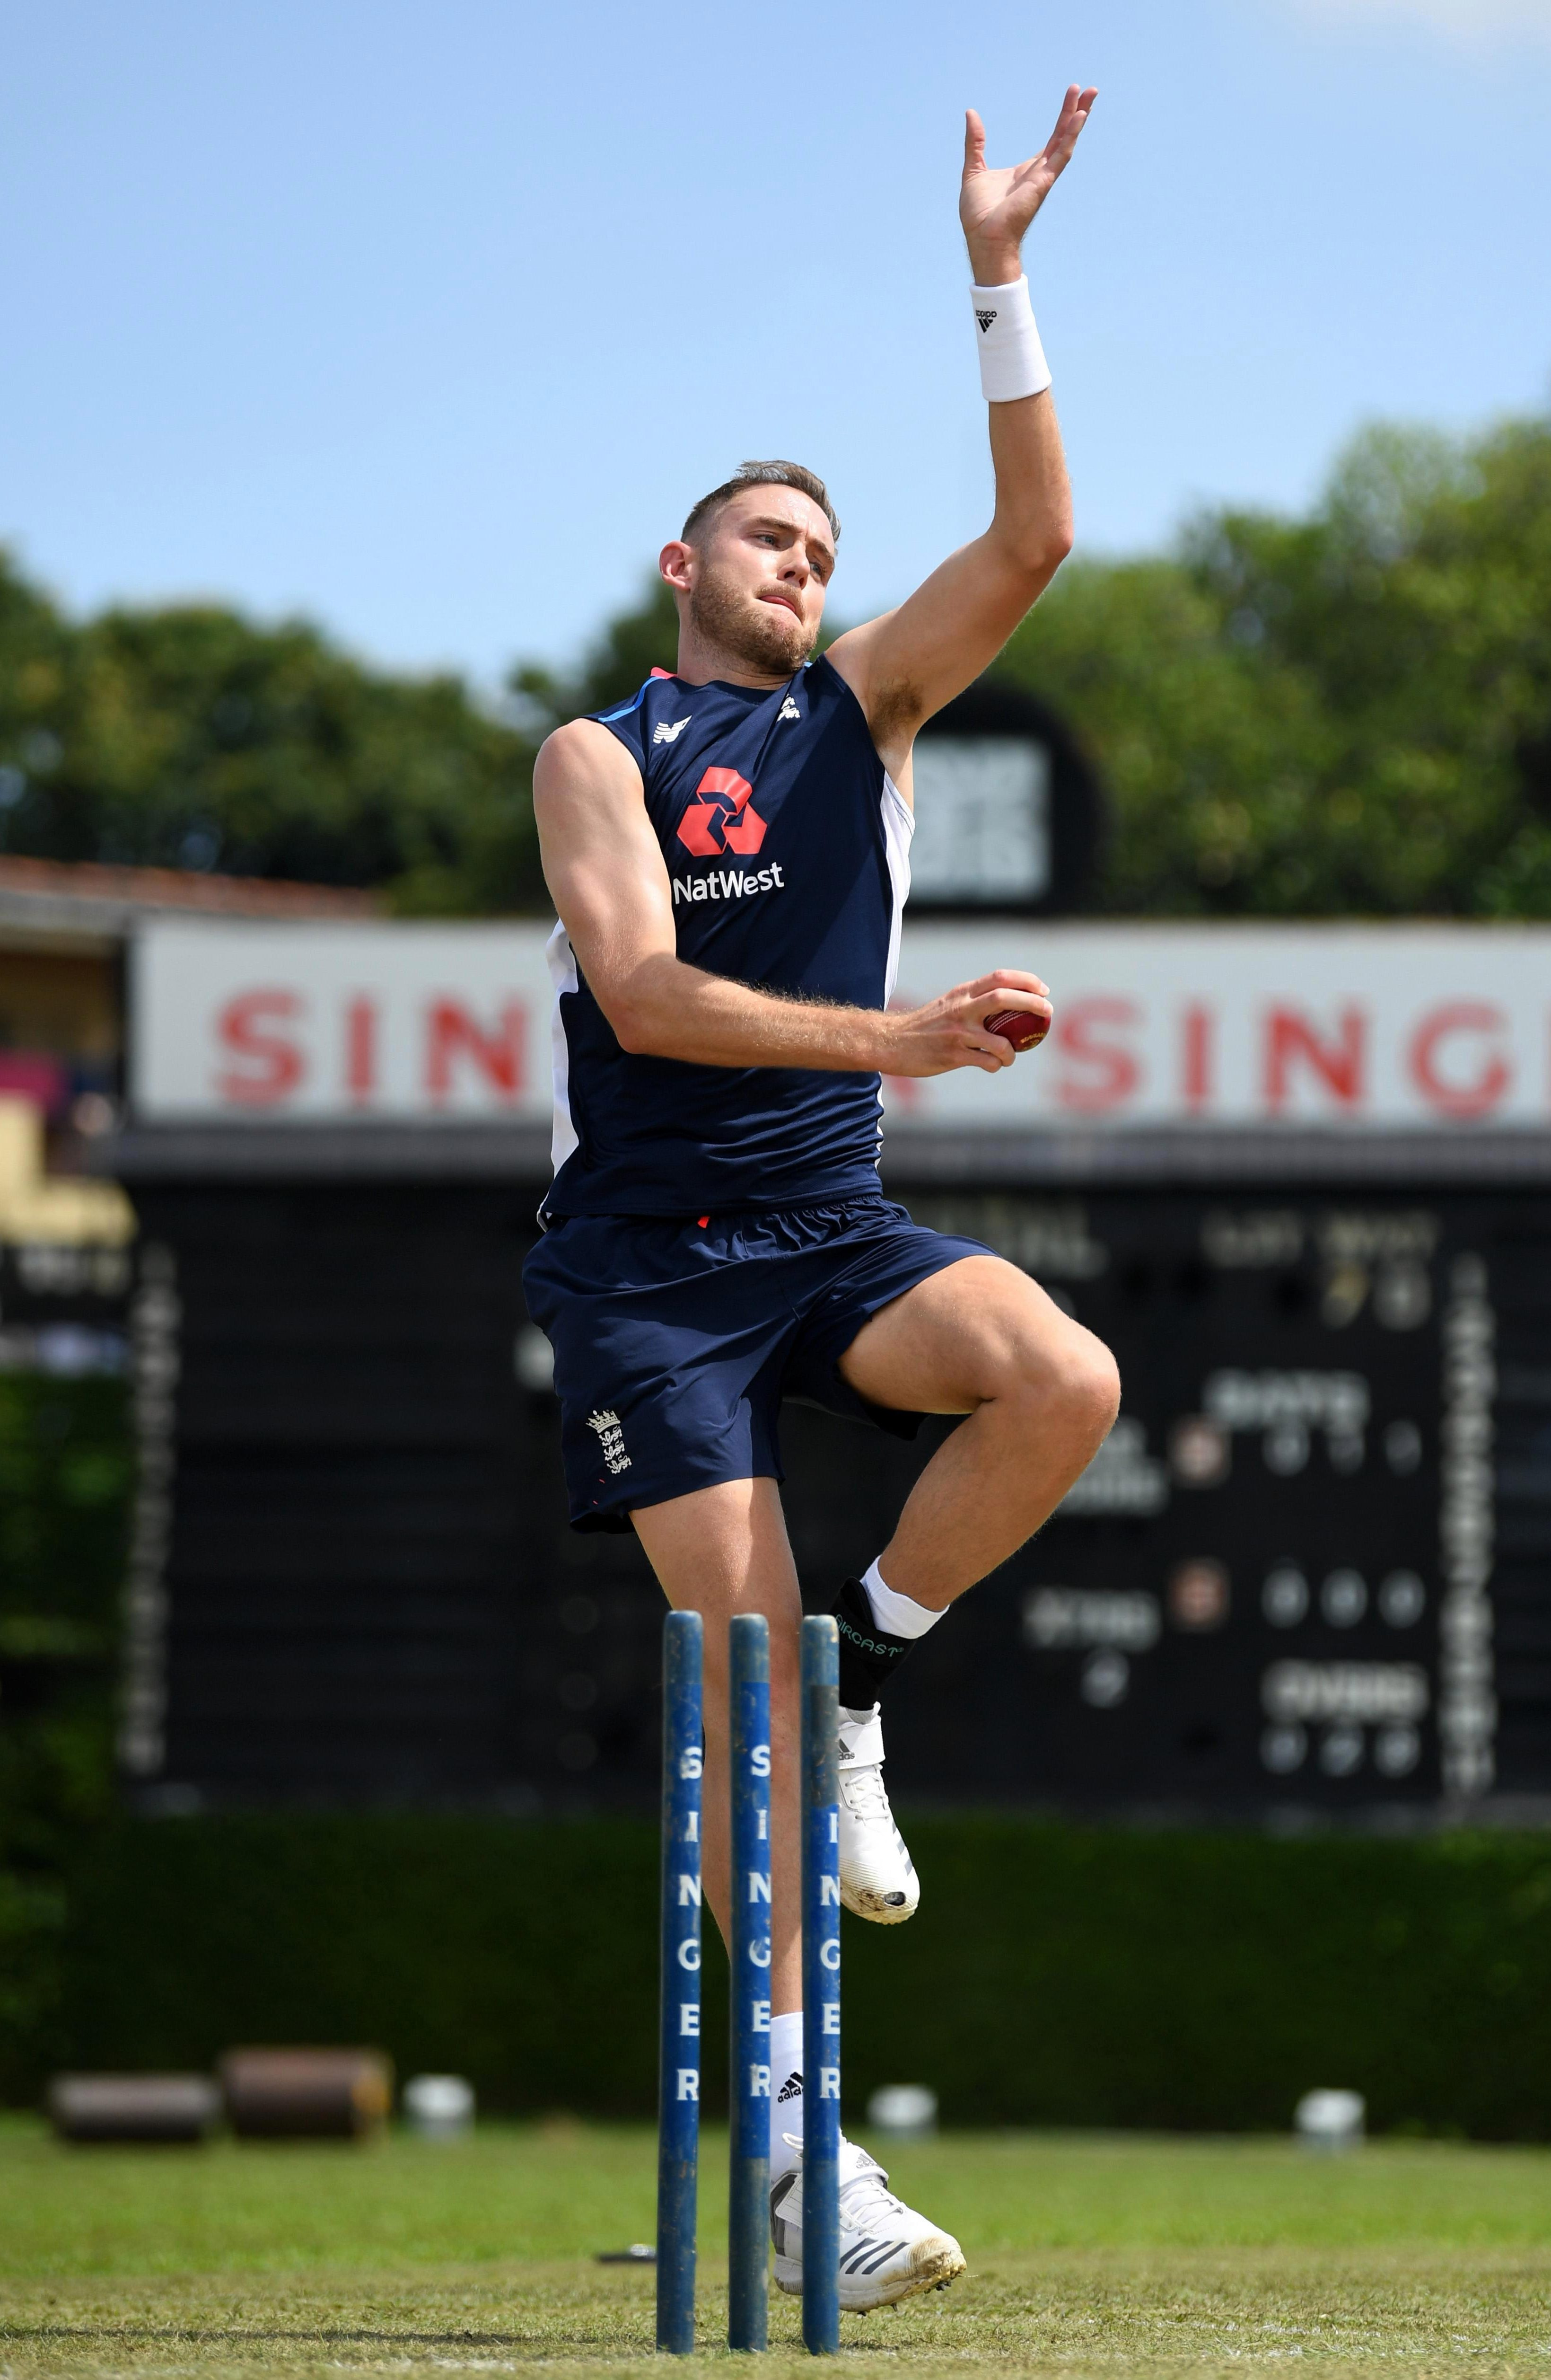 Broad must bowl superbly over the next few days to retain his place